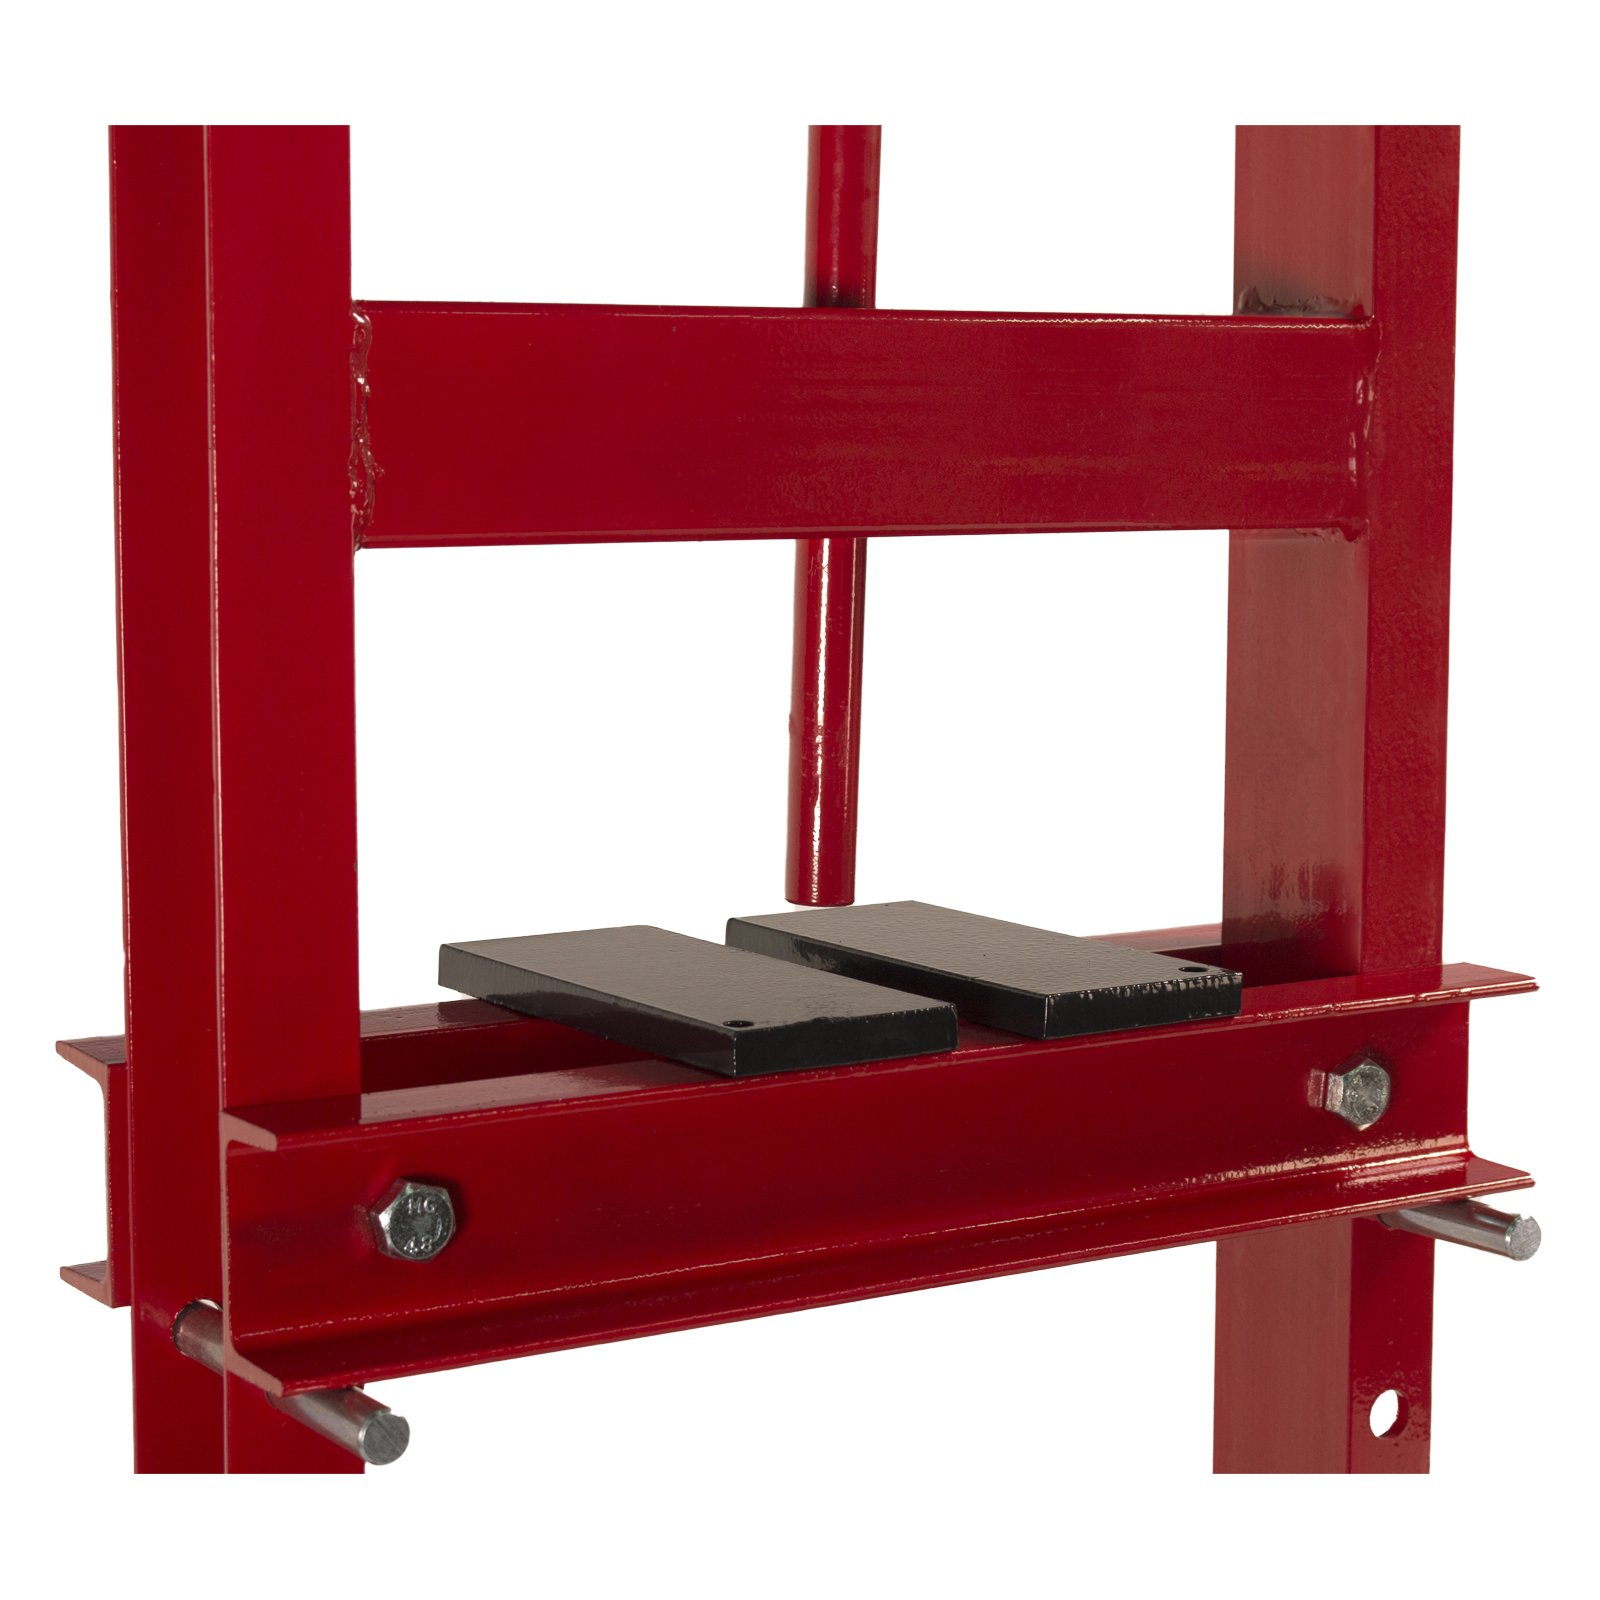 Dragway Tools 6-Ton Hydraulic Shop Floor Press with Press Plates and H Frame is Ideal for Gears and Bearings by Dragway Tools (Image #5)